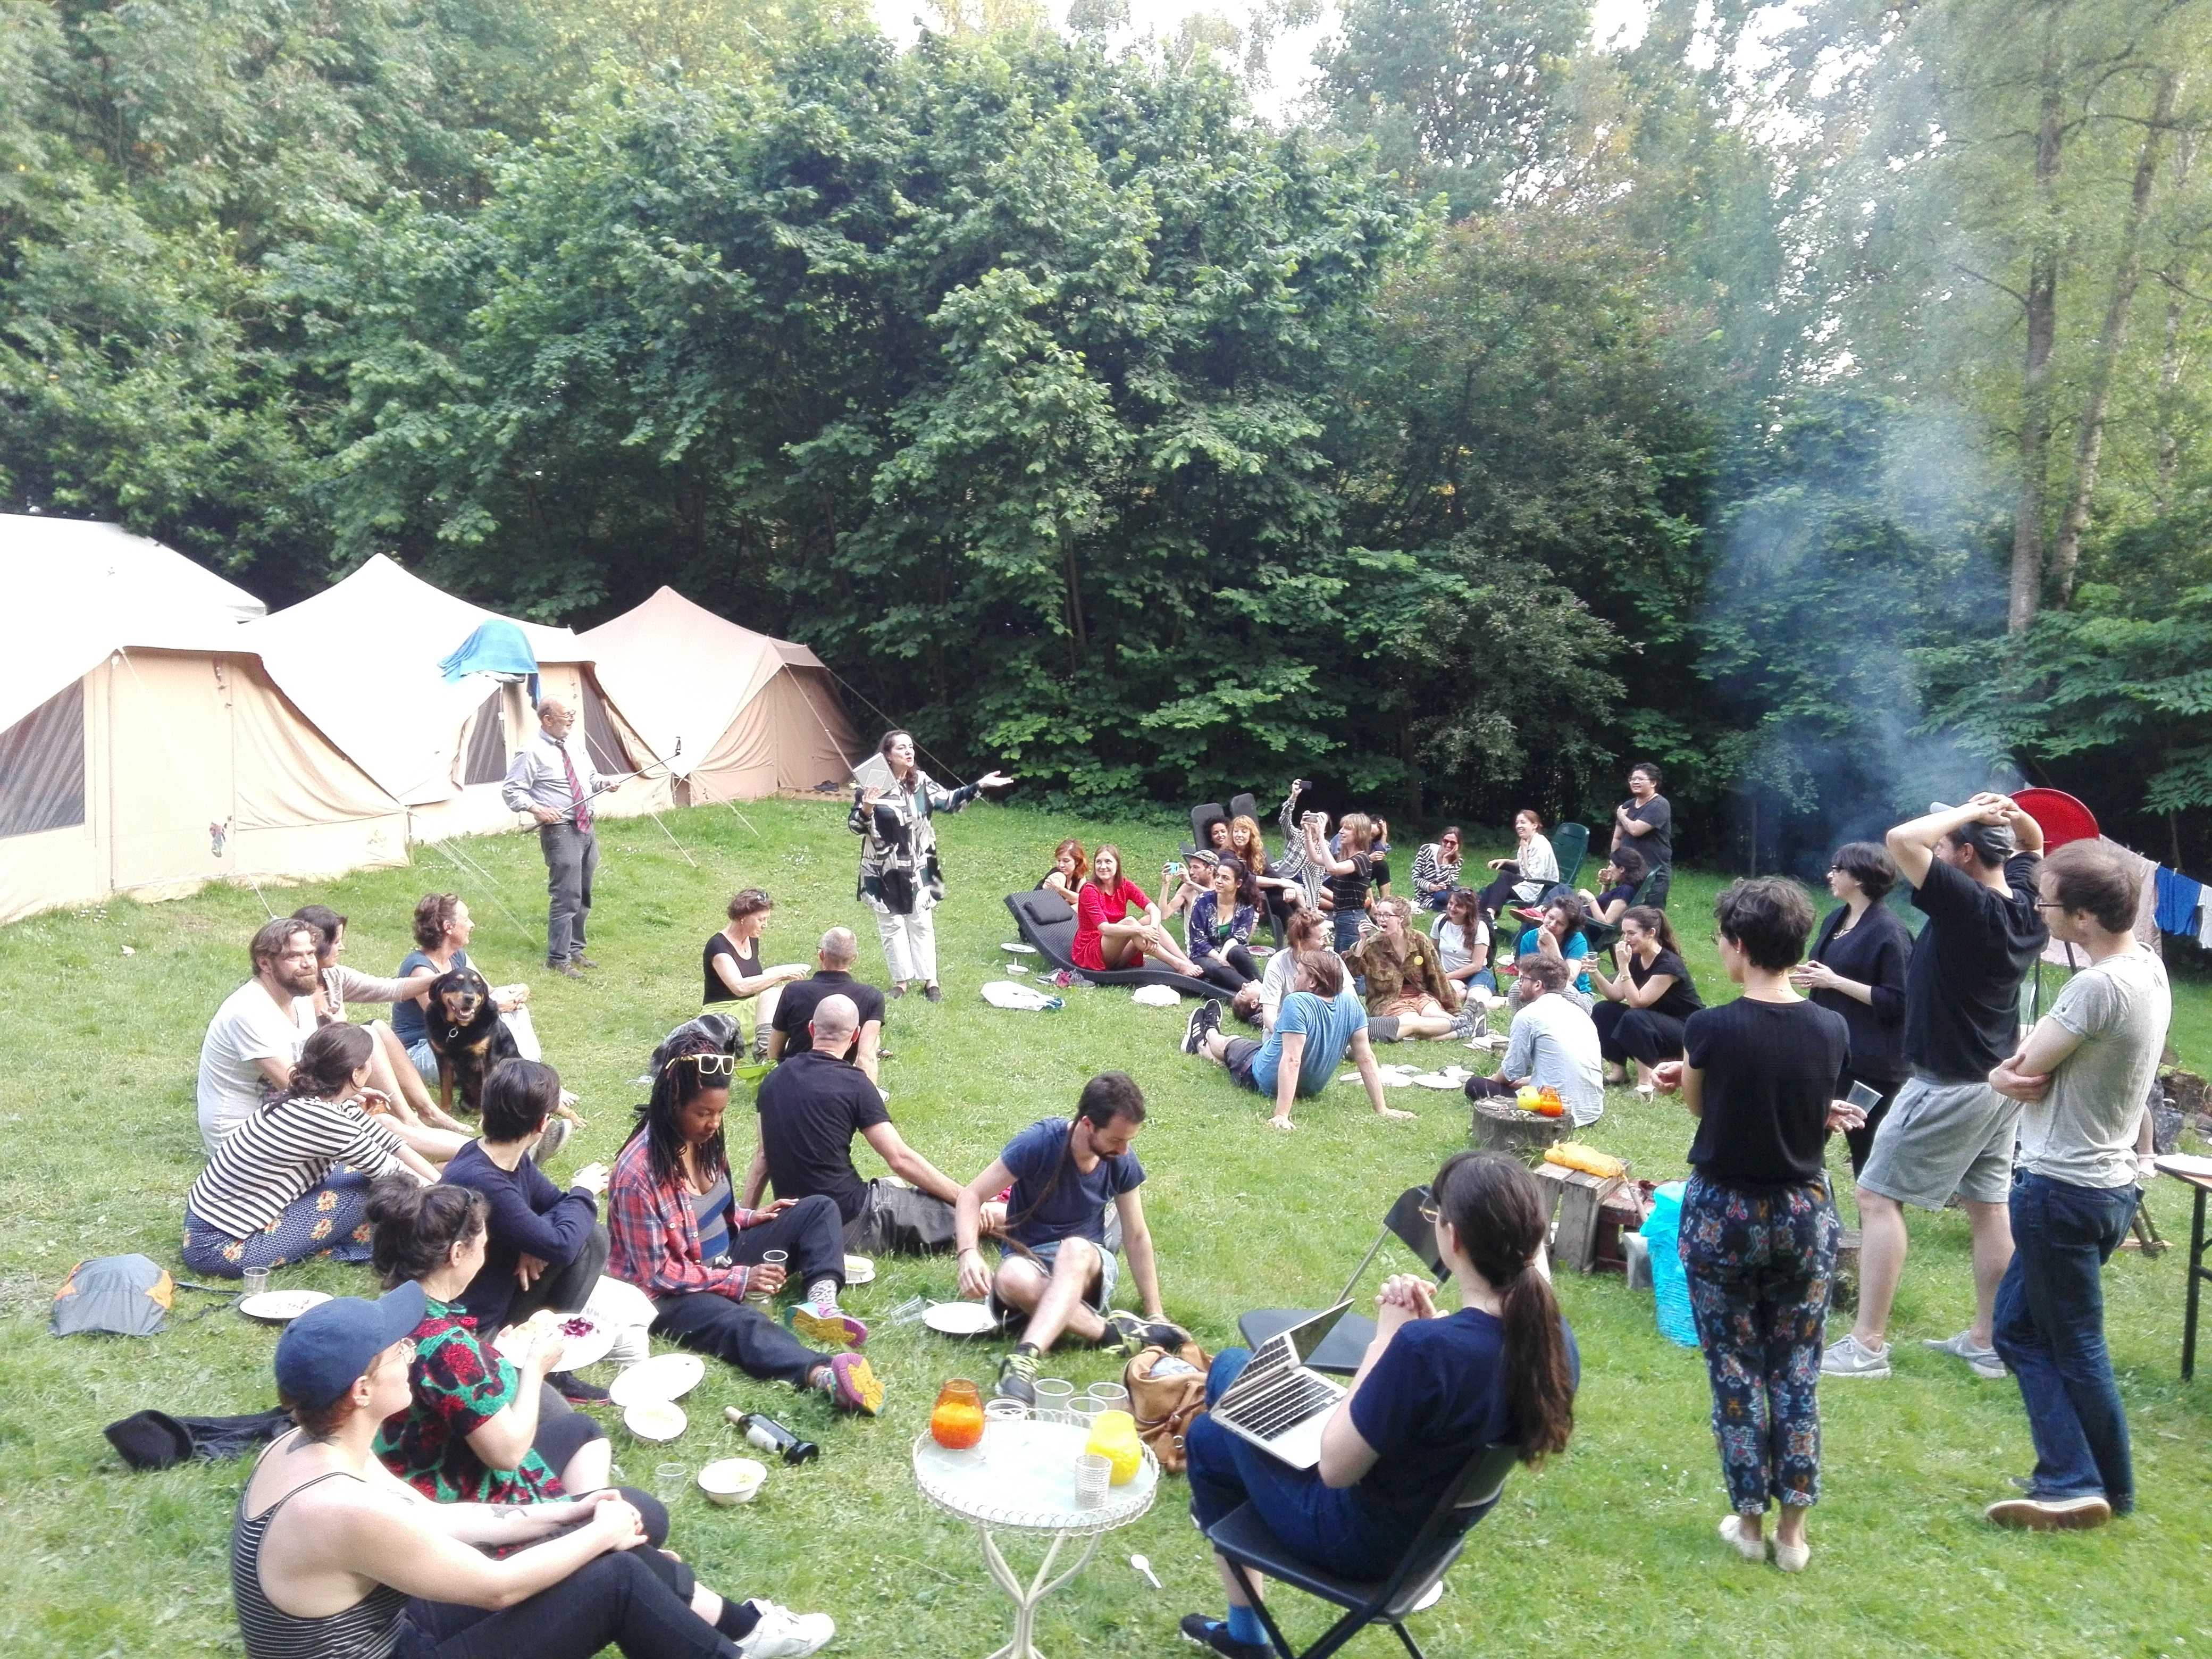 June 6: Roaming ON/OFF SONSBEEK'16. DAI-camp in the garden of Sonsbeek Park Ranger Jeroen Glissenaar. Enjoying outdoor diner & director's speech:) ( Photo credit: Despina Sevasti)